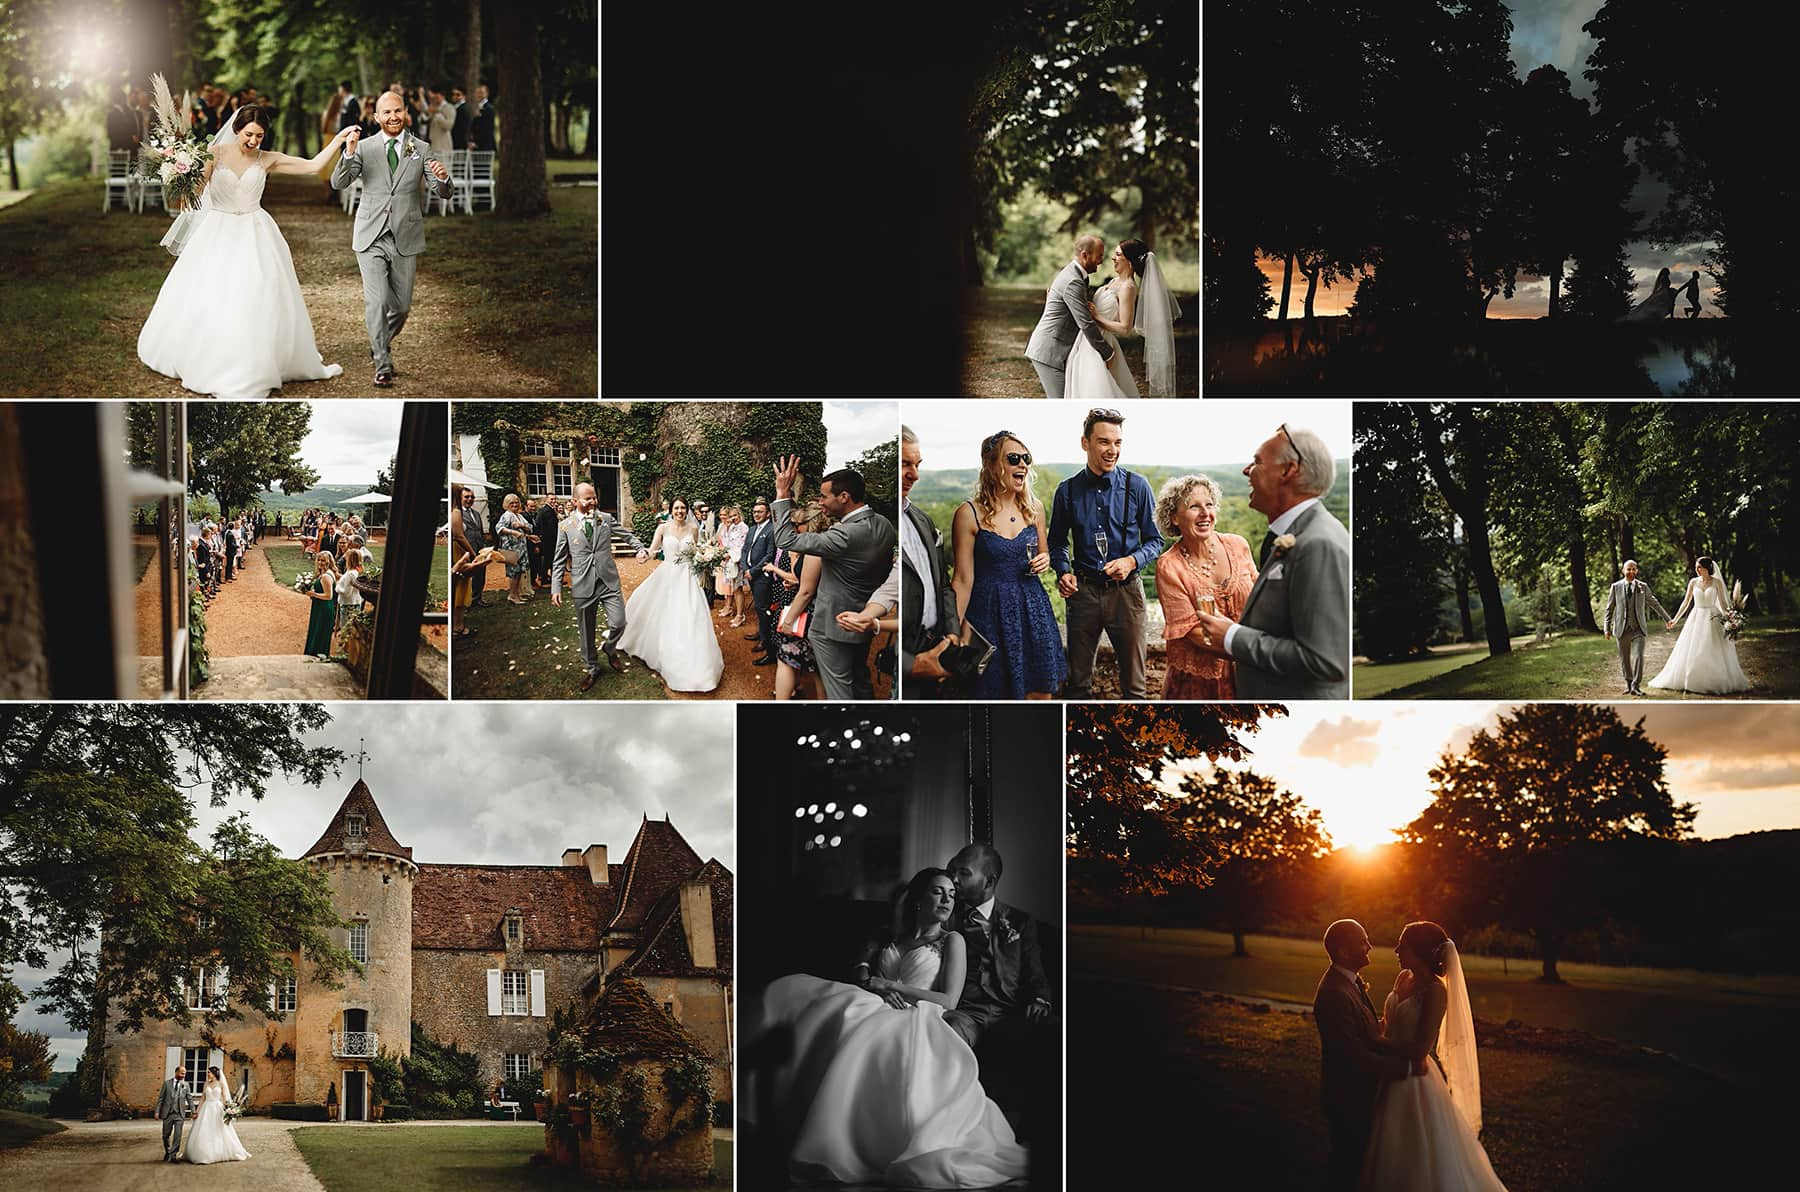 a selection of images from Chateau Cazanec in france